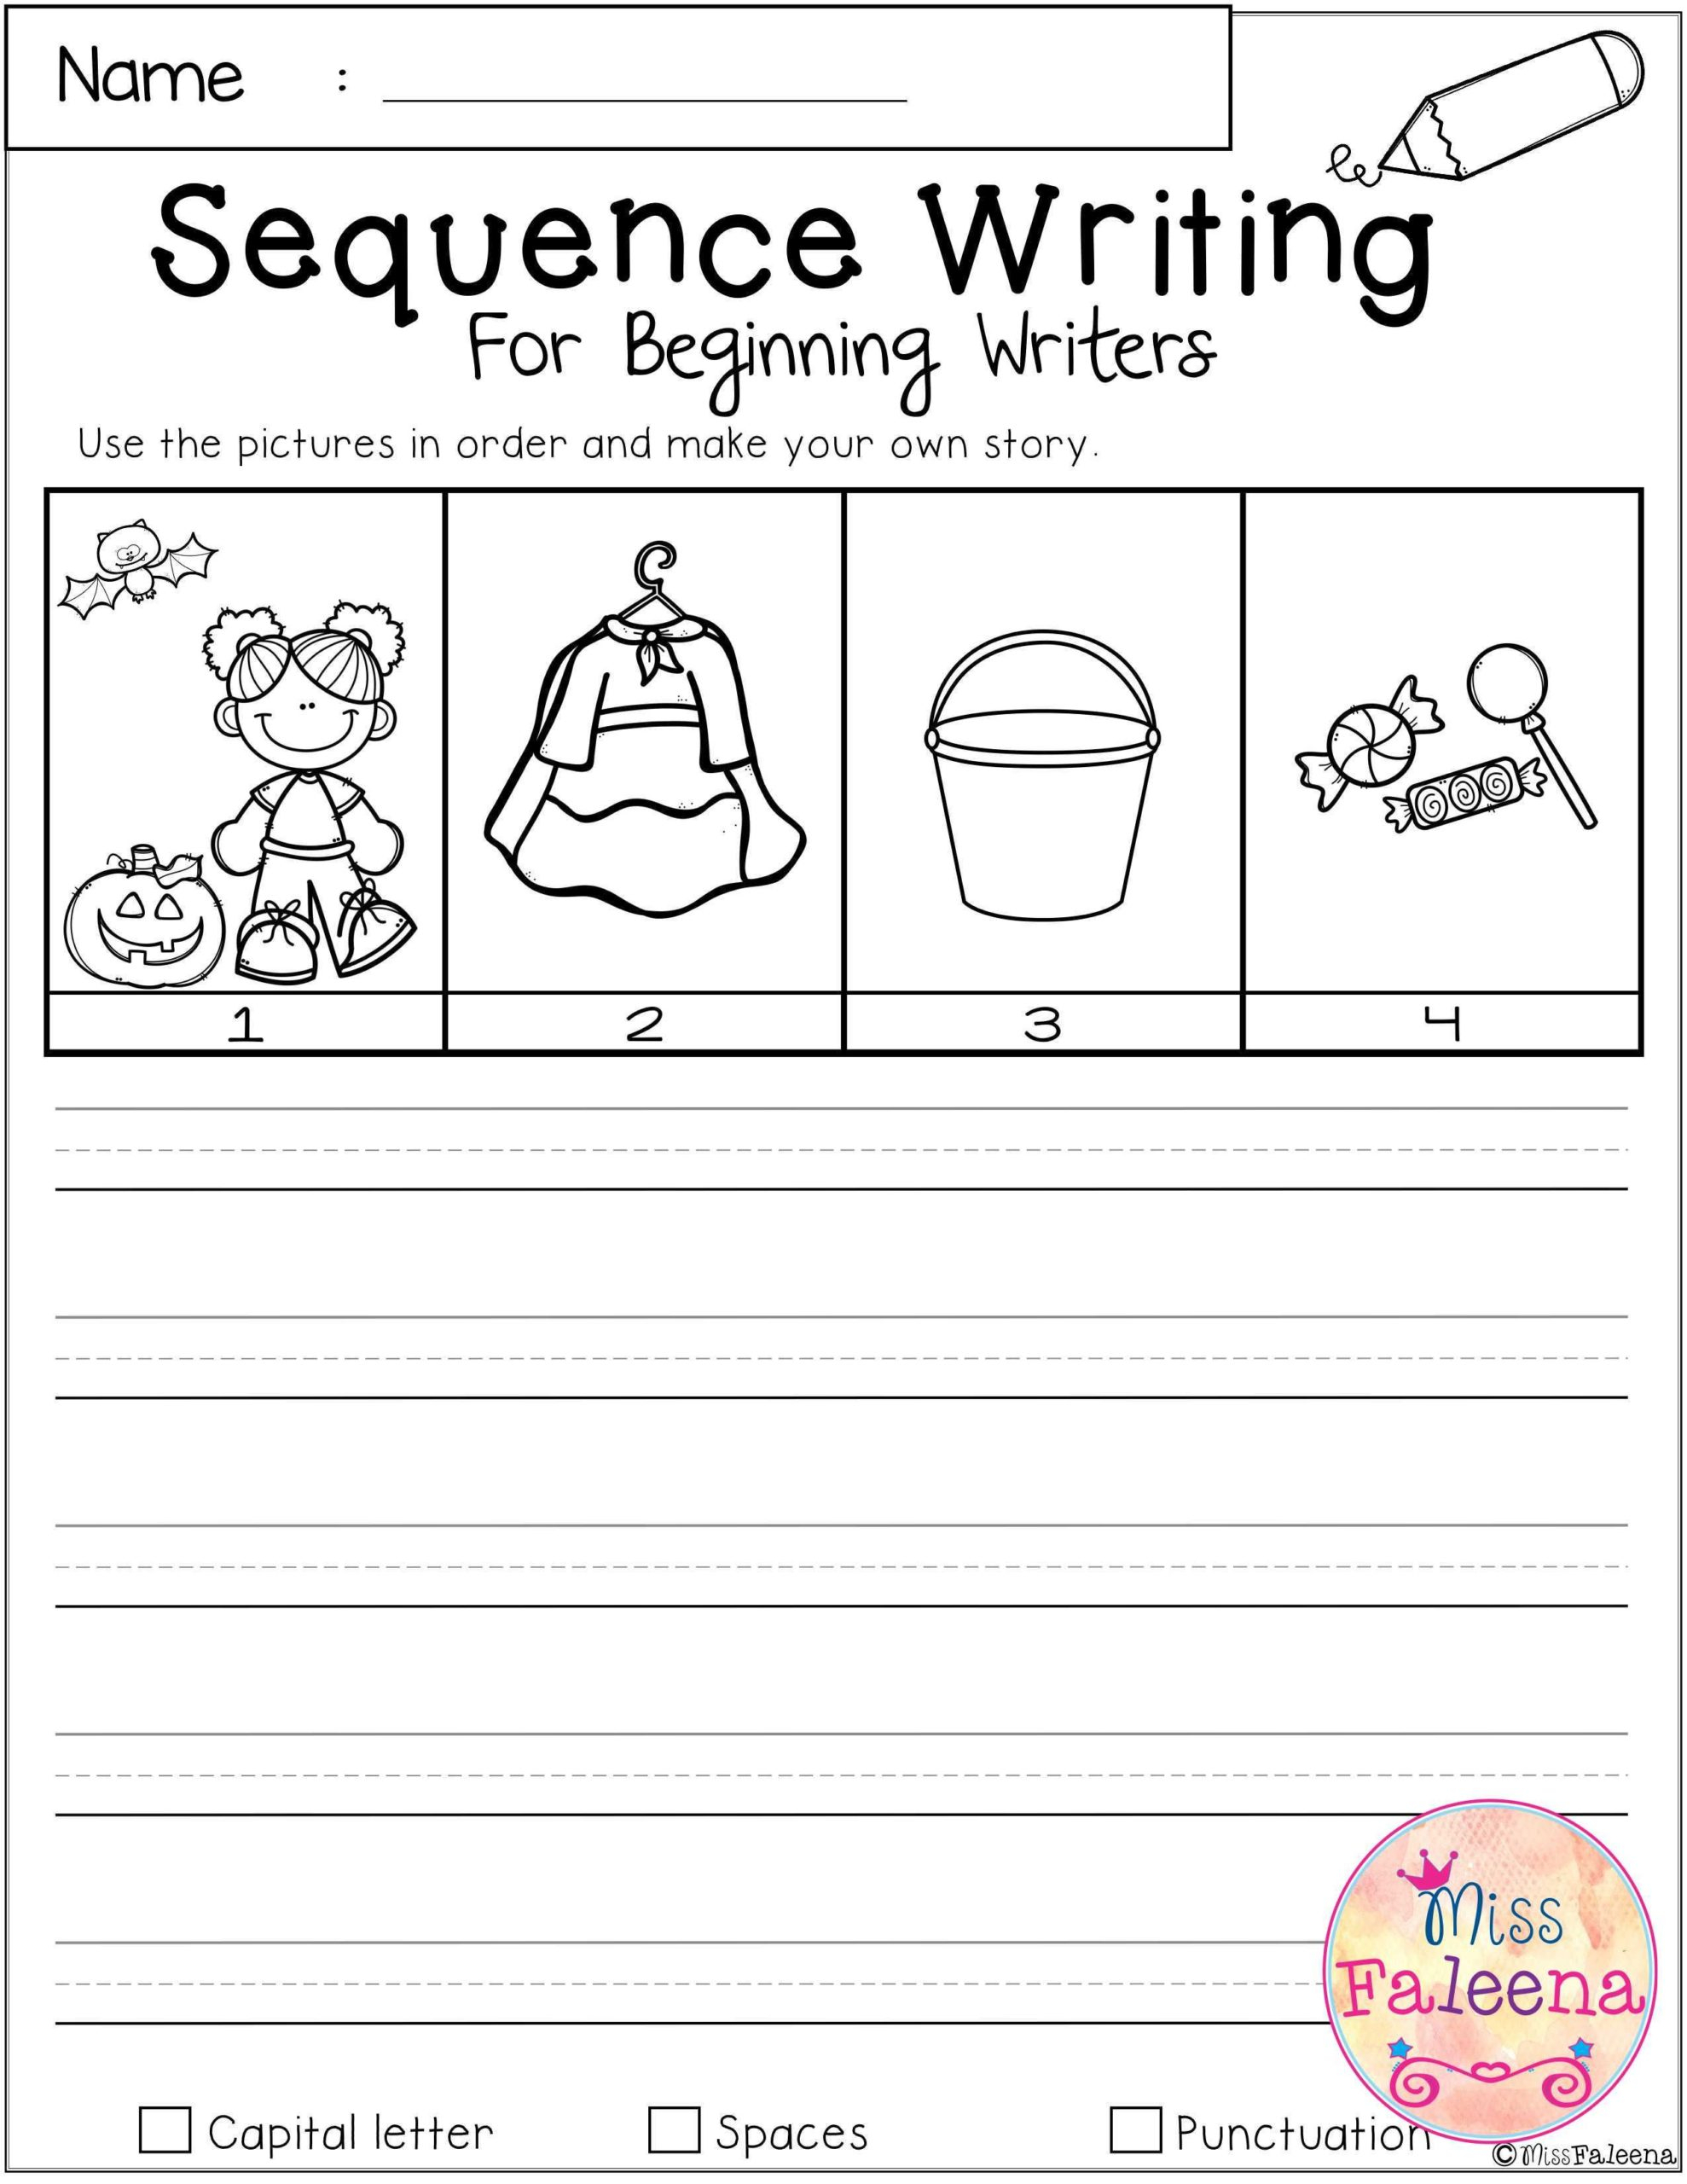 October Sequence Writing For Beginning Writers With Images